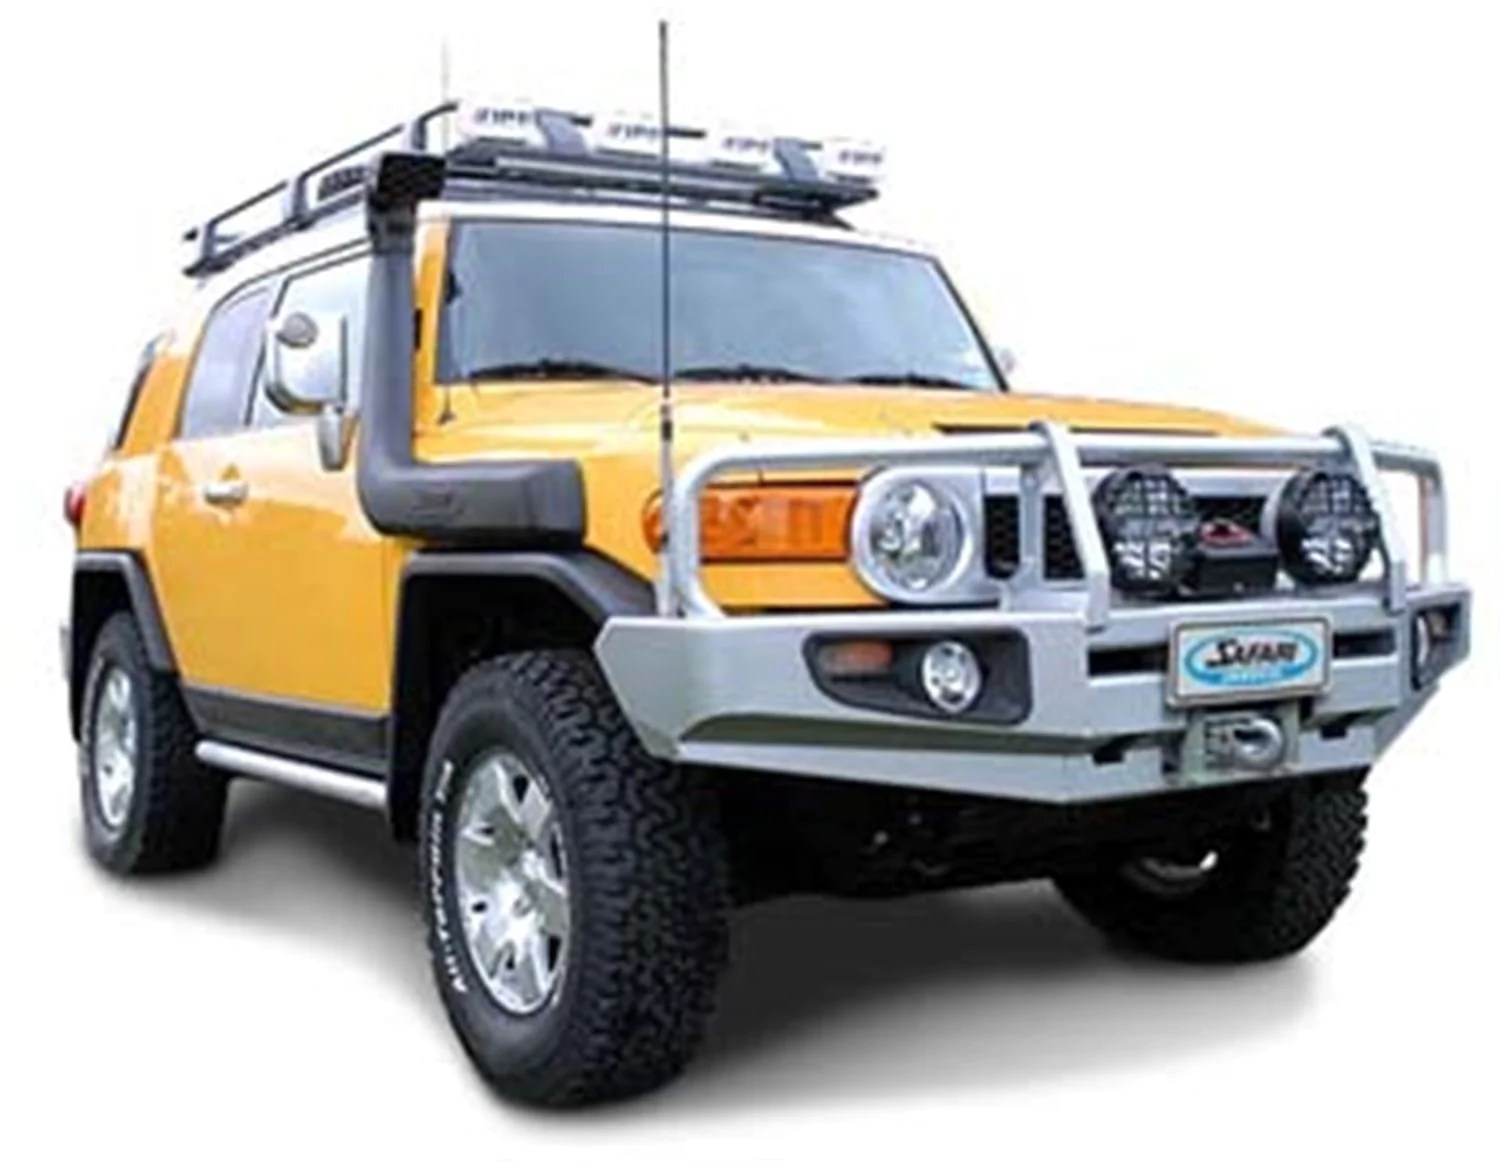 hight resolution of arb safari snorkel fj cruiser 2010 2014